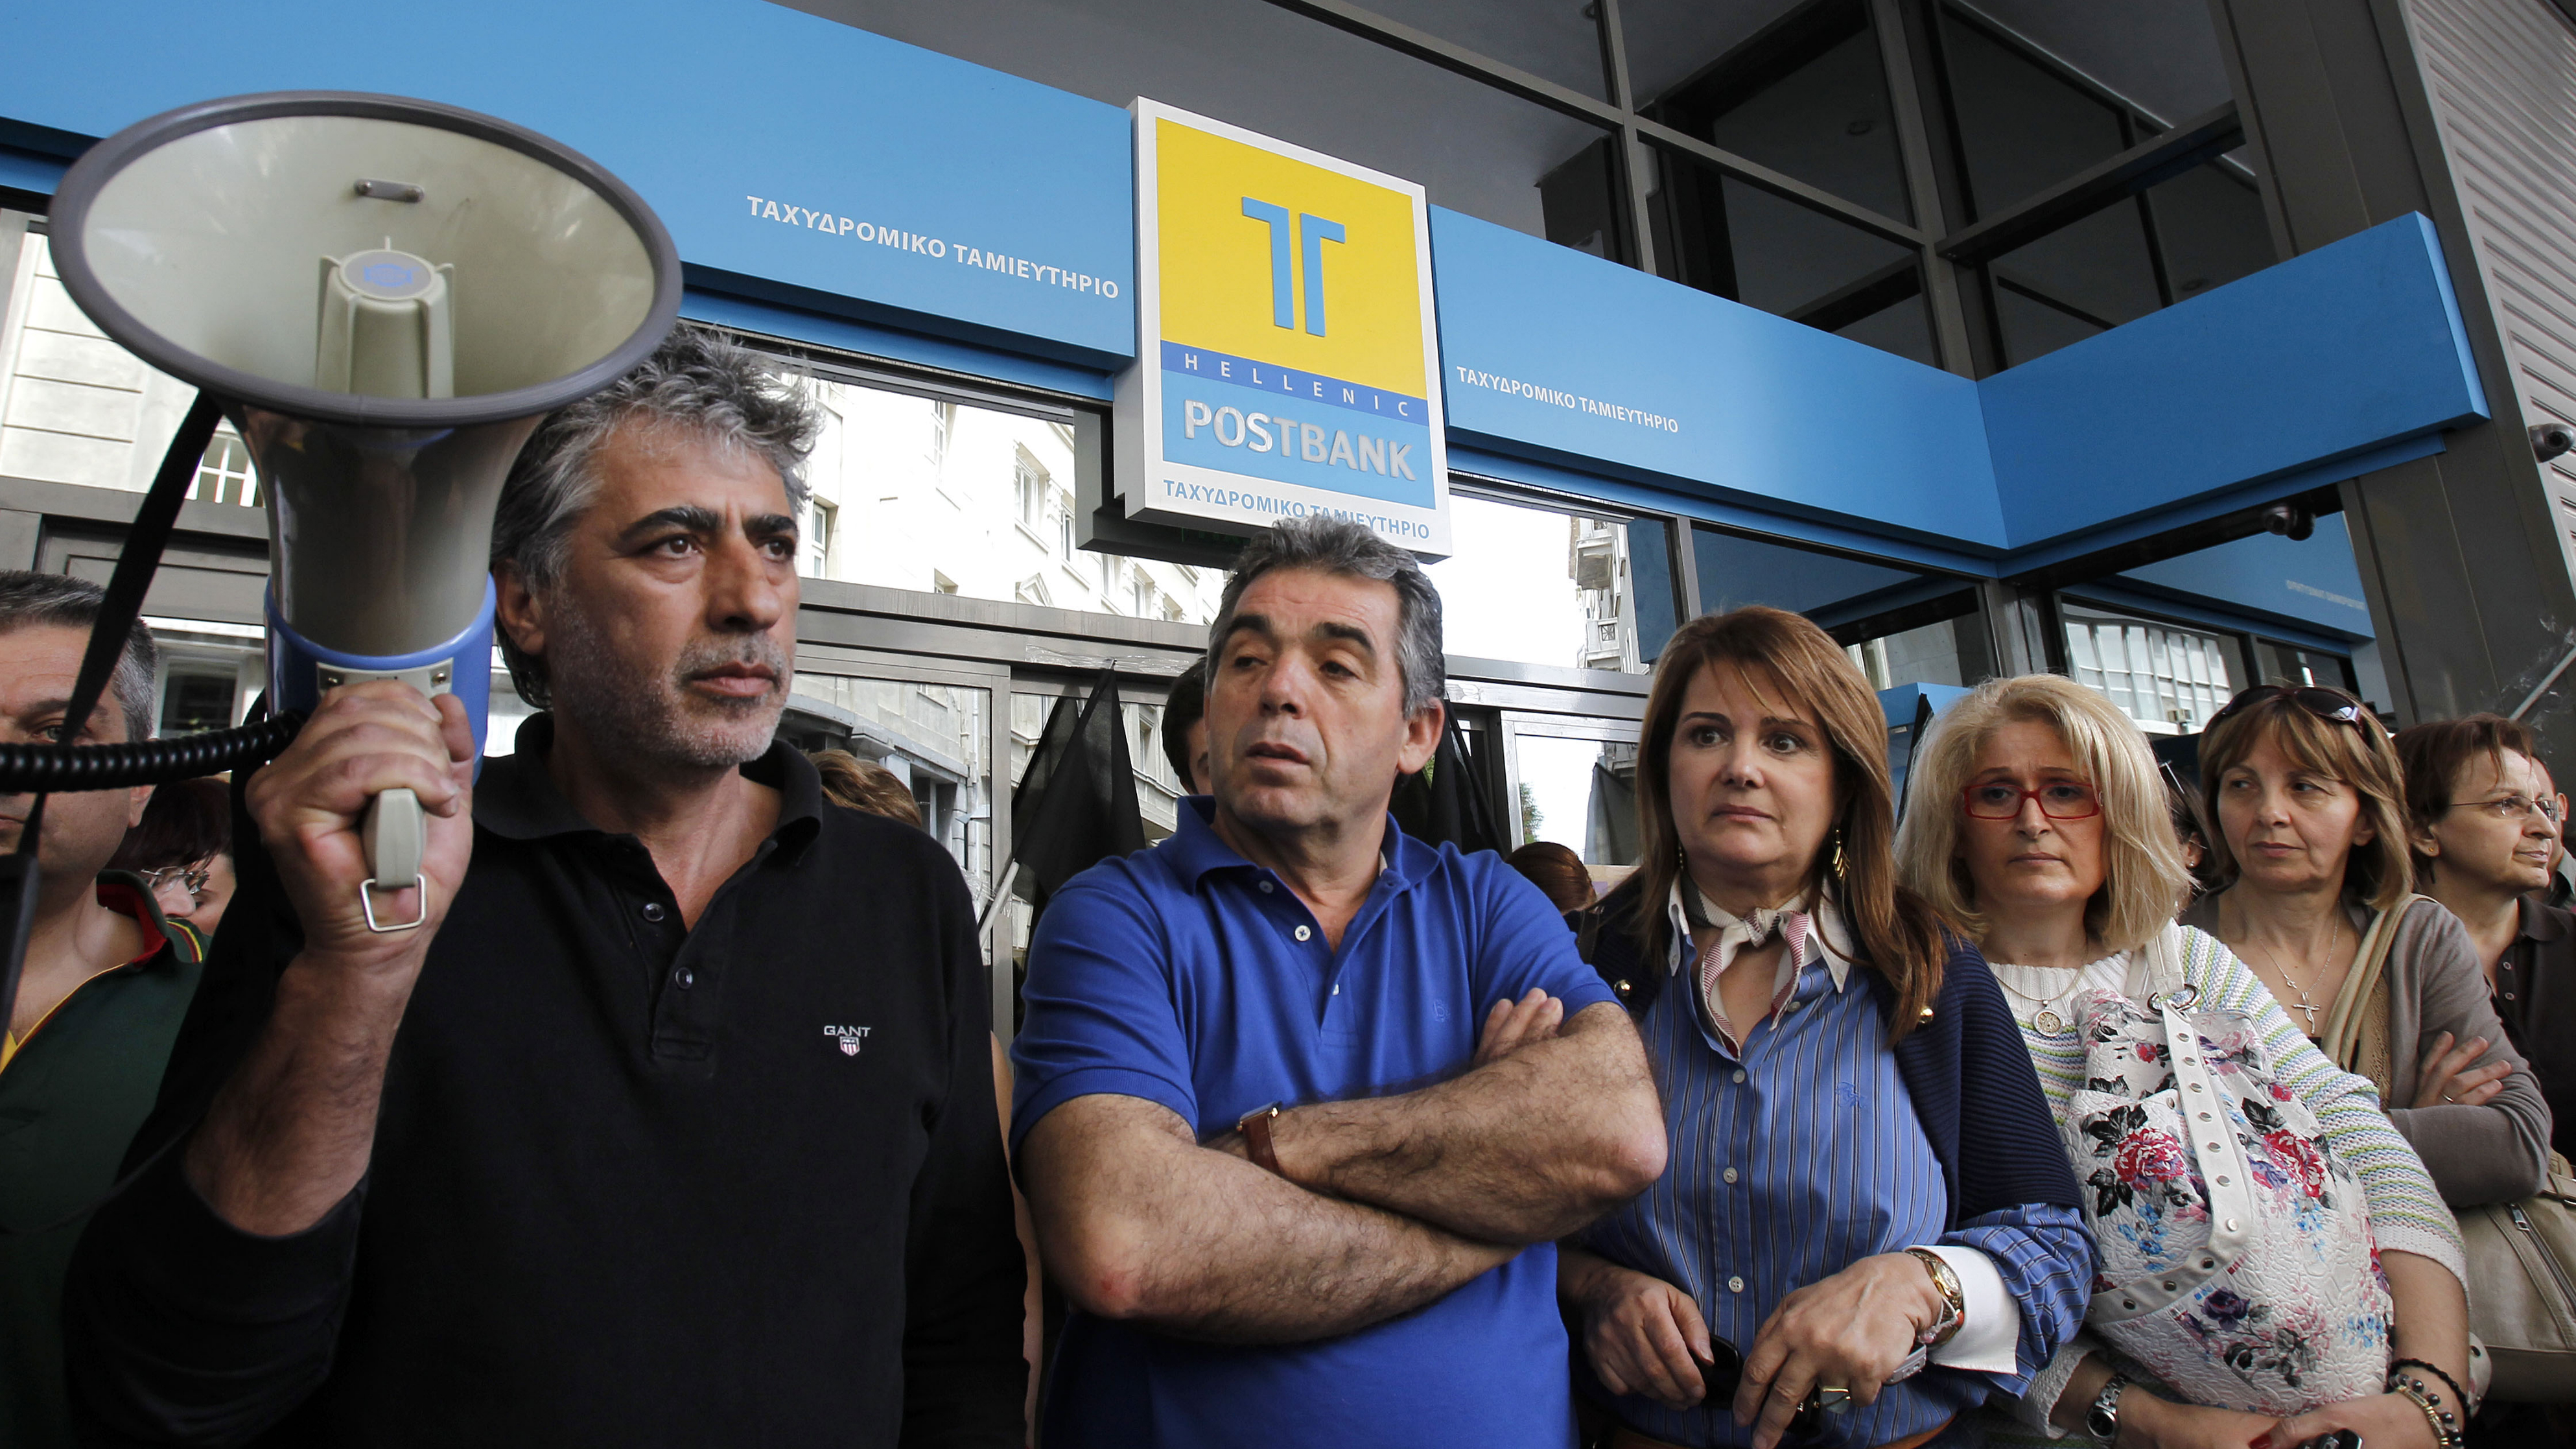 Protesting employees of the state-run Hellenic Postbank block the entrance to the headquarters of the bank in central Athens, on Wednesday, May 25, 2011. The government in crisis-hit Greece has promised to privatize the bank in a massive sale of state assets aimed at raising 50 billion euros by the end of 2015, to help pay the country's massive national debt. (AP Photo/ Petros Giannakouris)